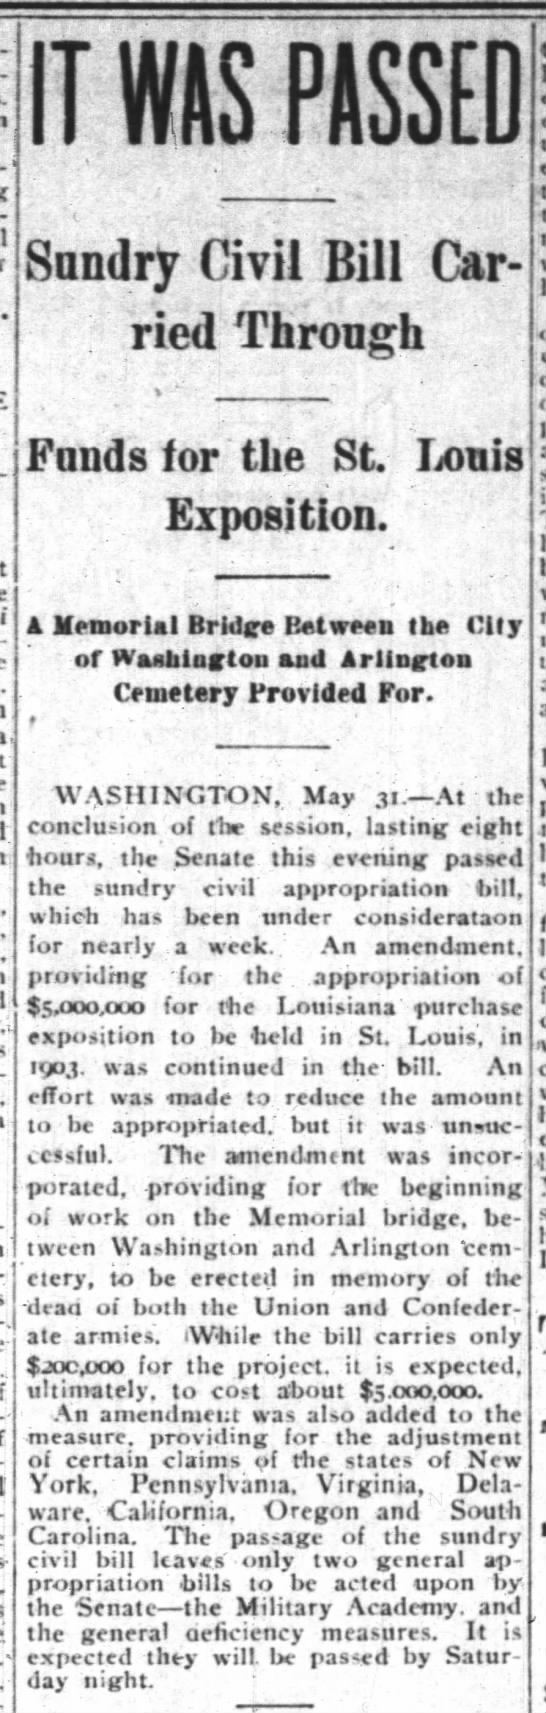 Funding for Louisiana Purchase Exposition Carried in Federal Appropriations Bill -